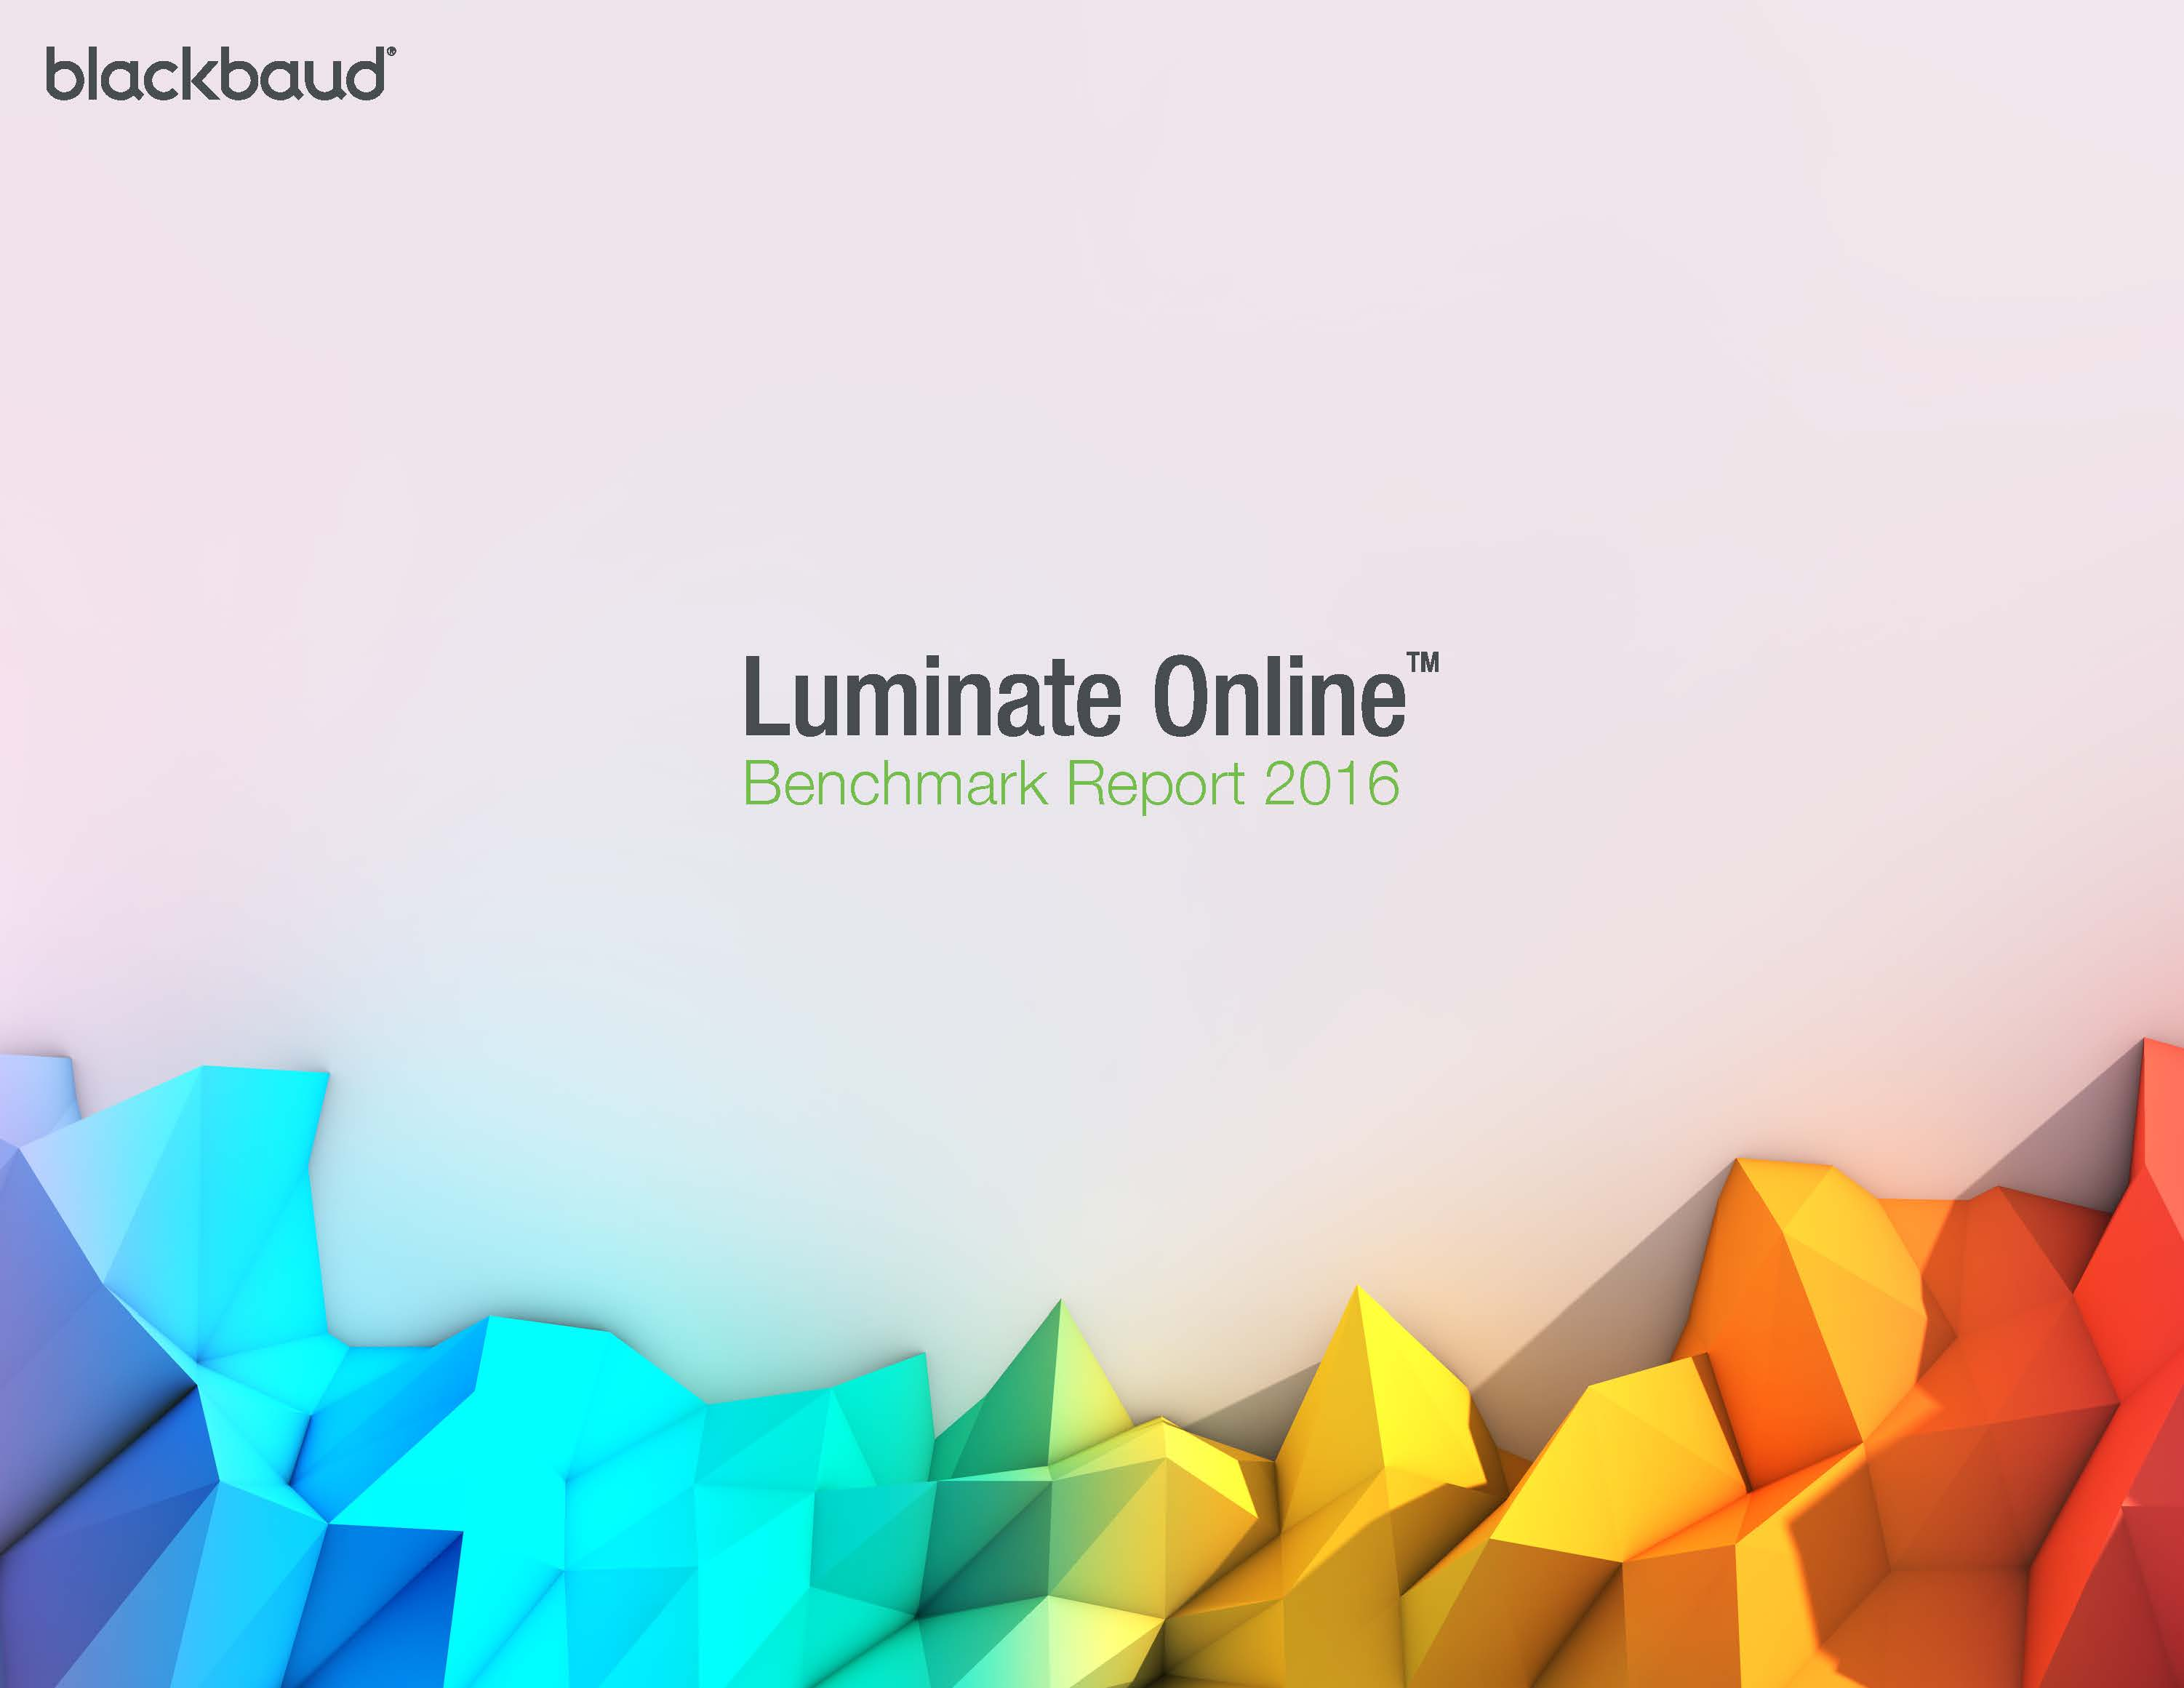 2016-luminate-online-benchmark-report cover image Page 01